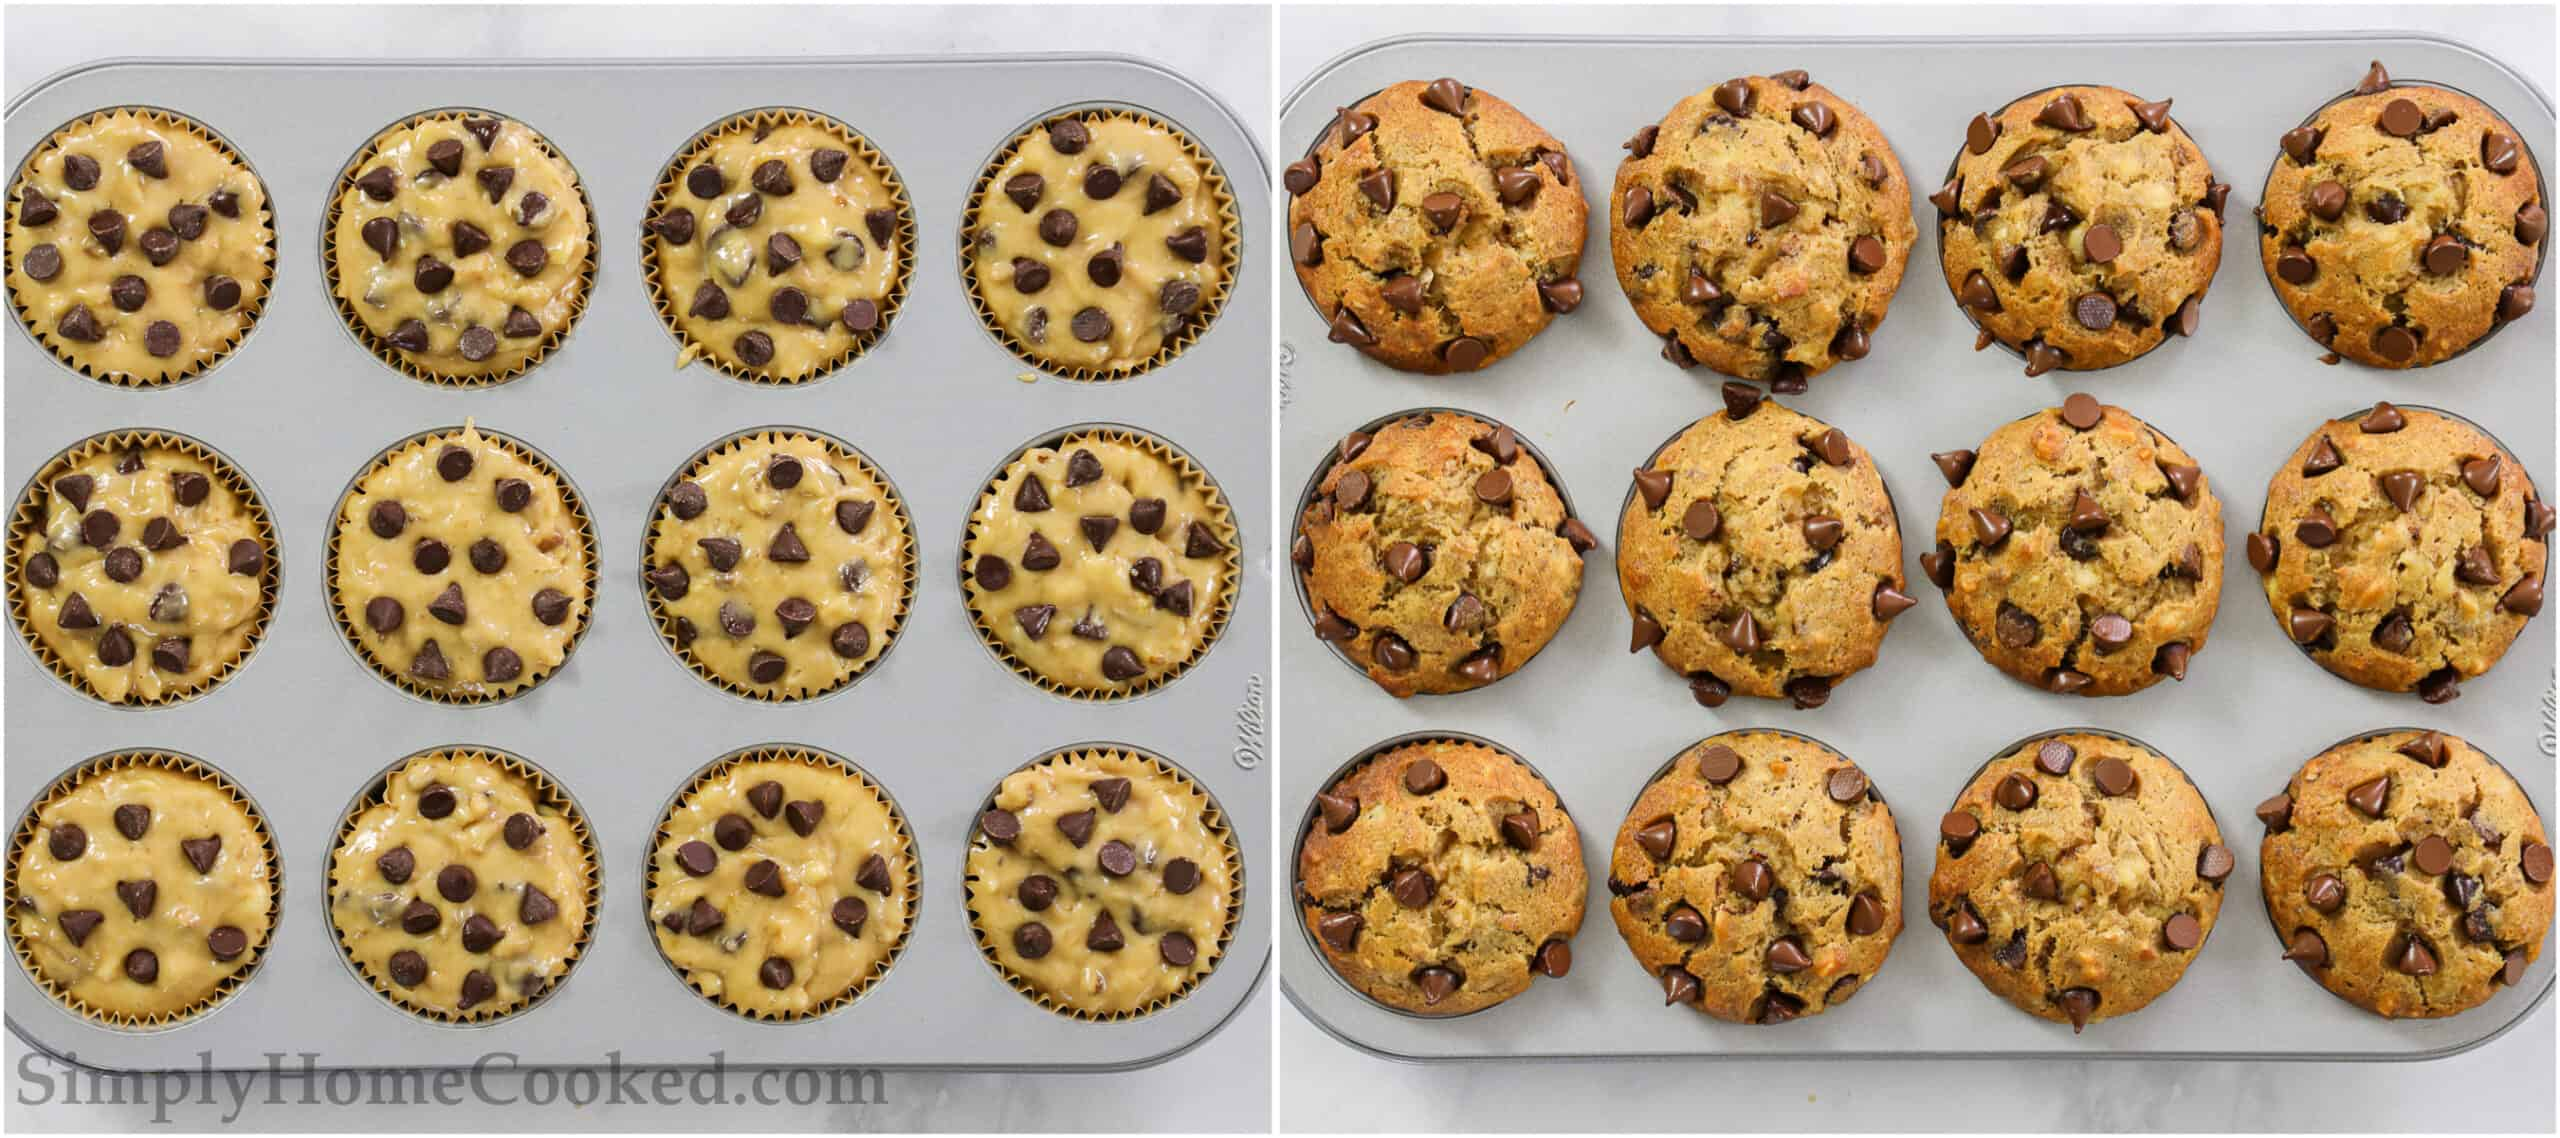 Steps to make Banana Chocolate Chip Muffins, including pouring the batter into muffin tins and baking them.